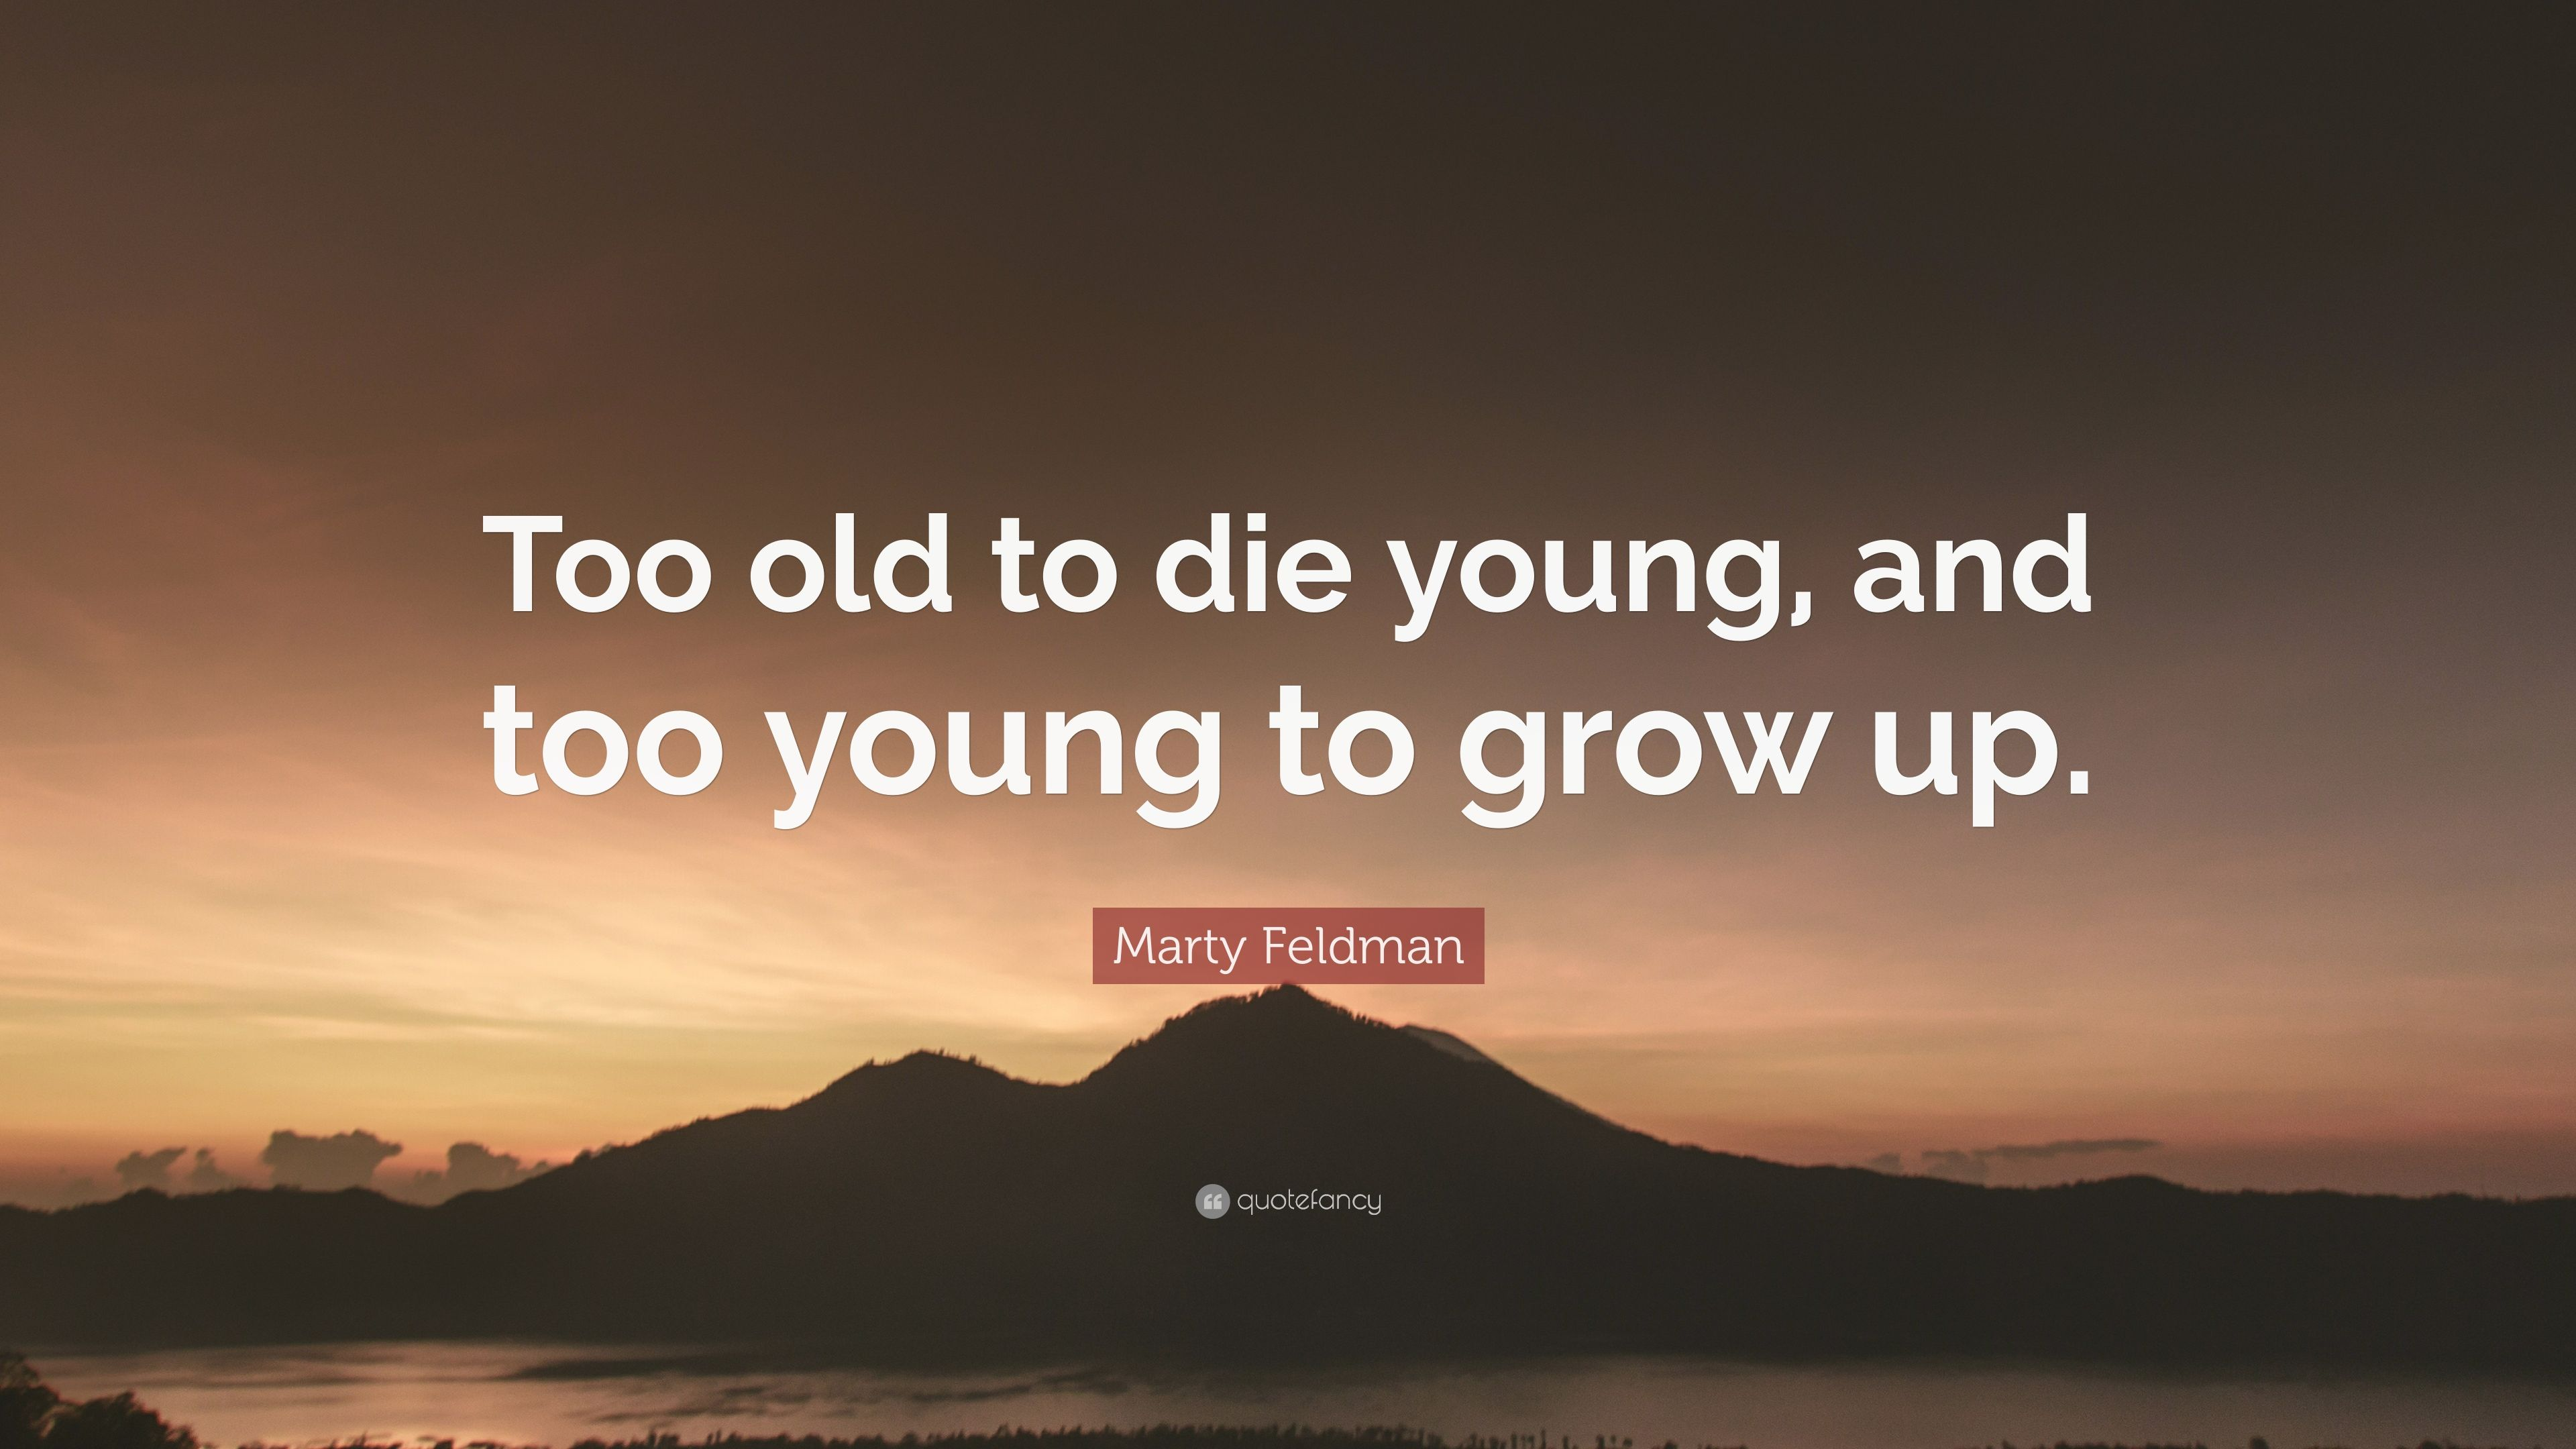 Marty Feldman Quote Too Old To Die Young And Too Young To Grow Up